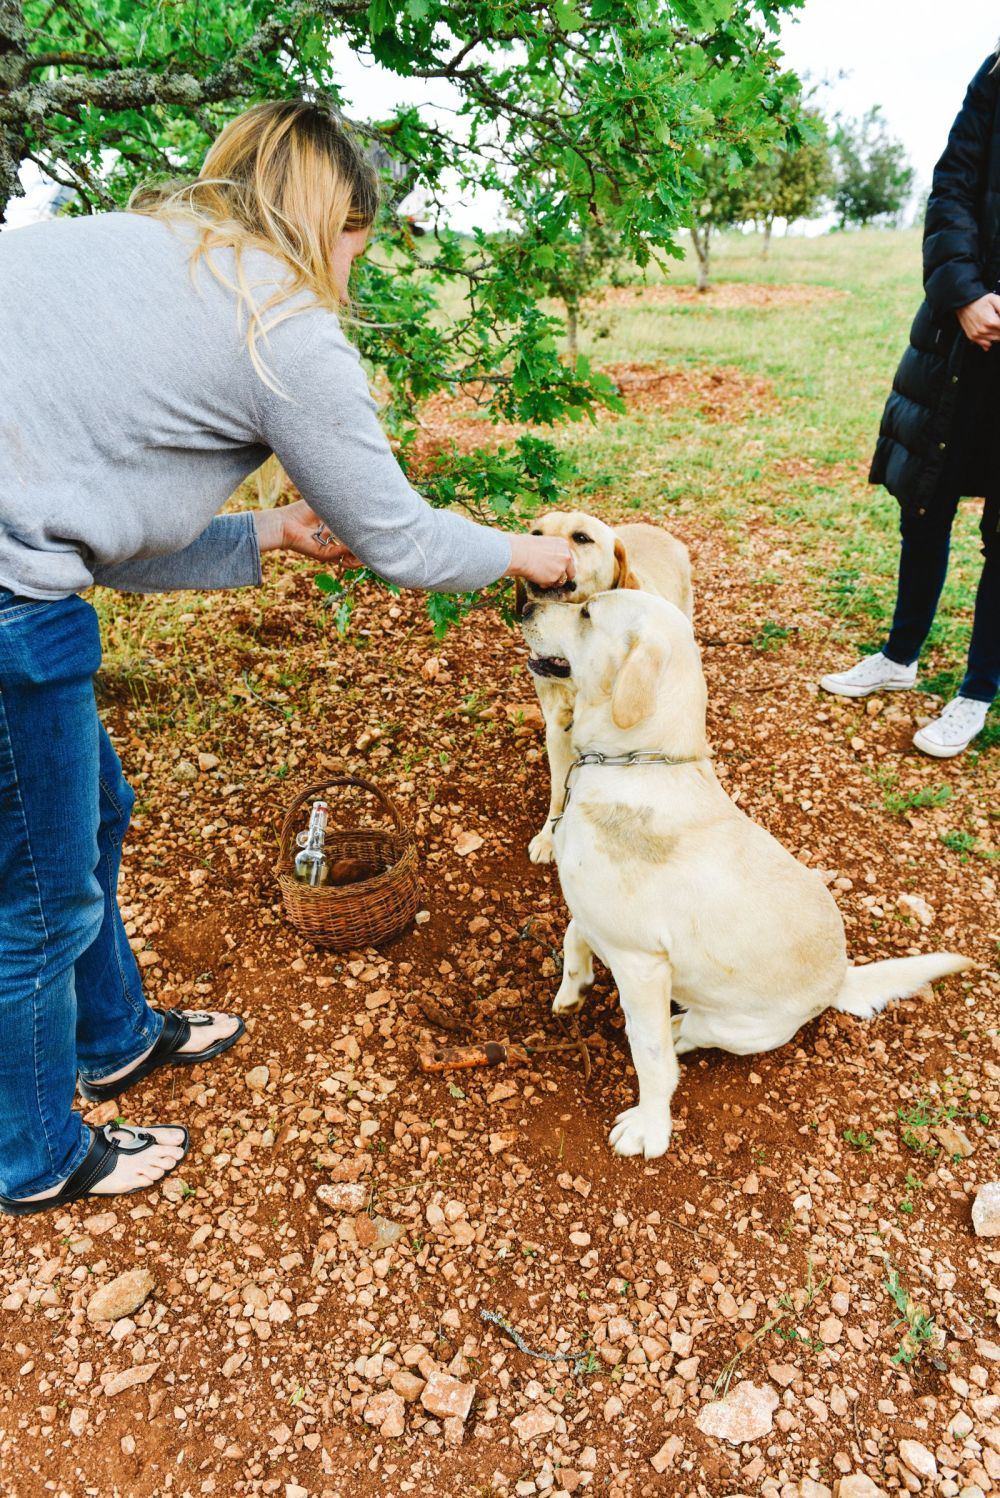 Truffle-Hunting, Chateau-Living And Wine-Tasting In the French Dordogne Valley (6)